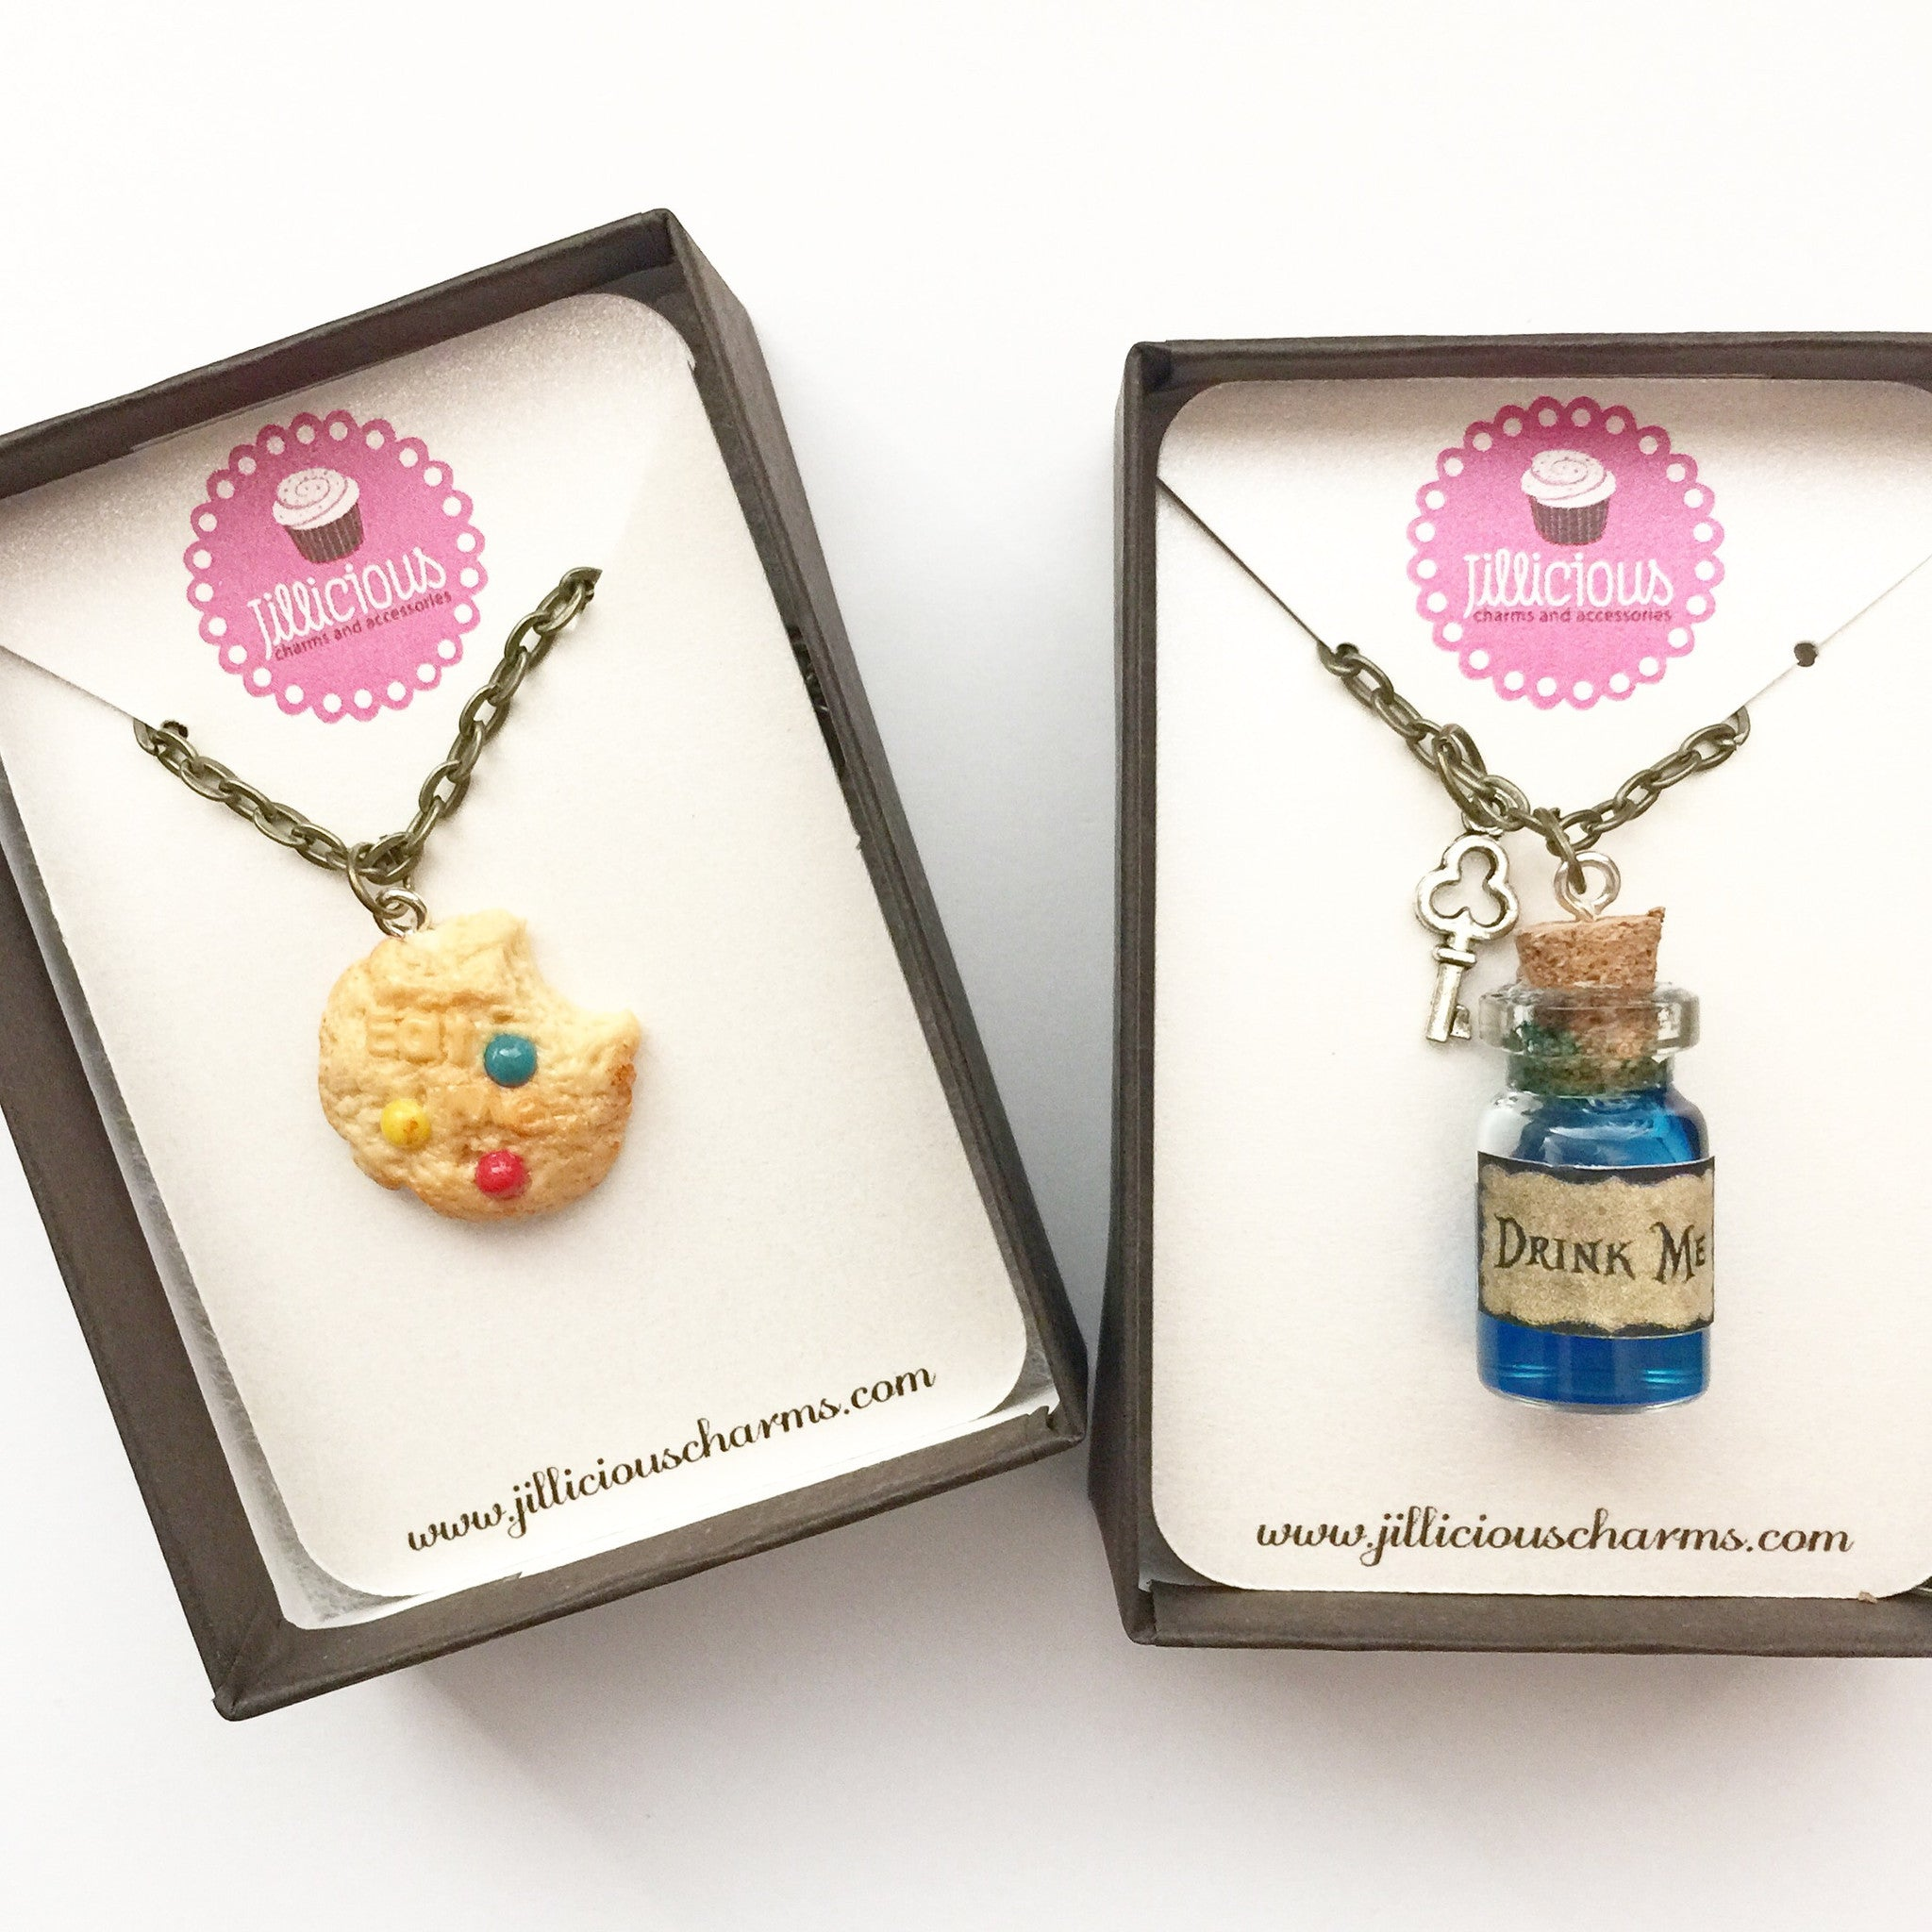 Alice in Wonderland Inspired Friendship Necklace Set- Eat me and Drink me Necklace - Jillicious charms and accessories - 3